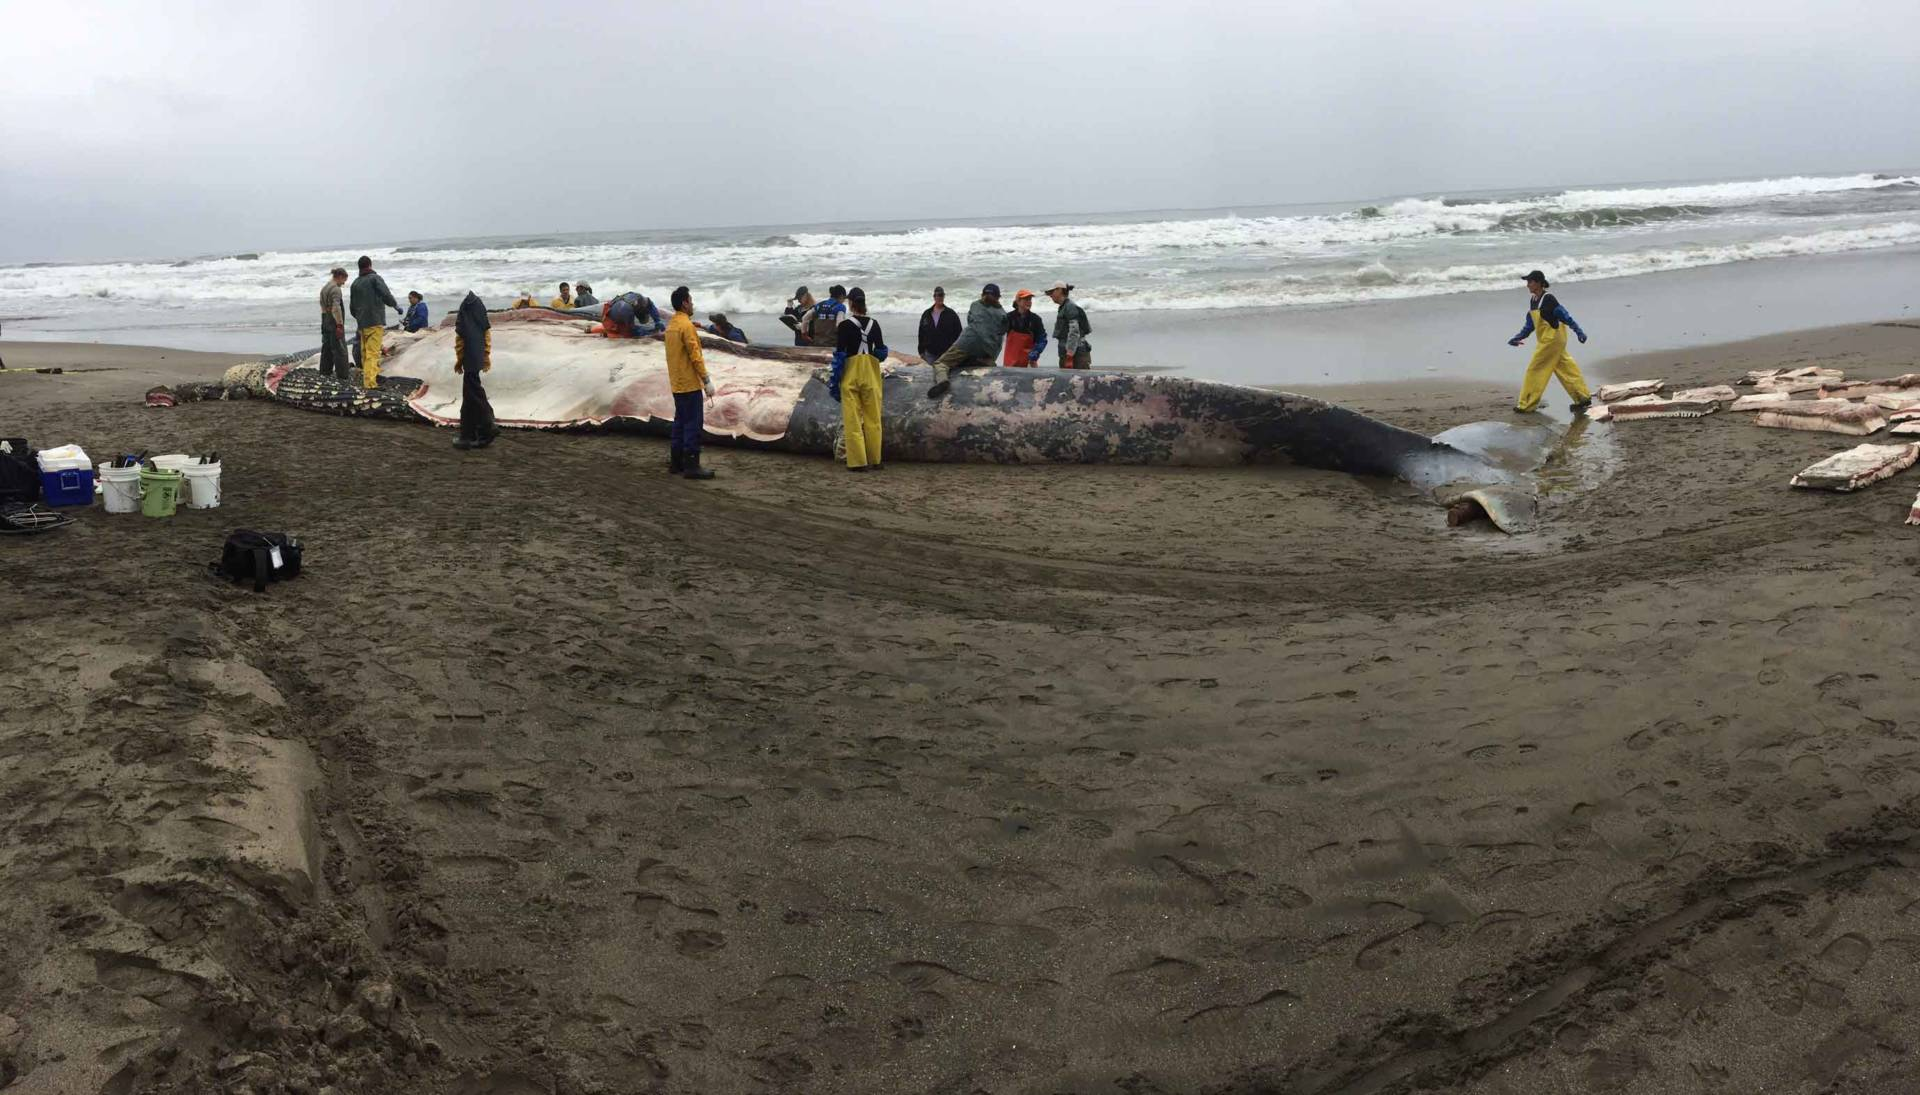 The rotting carcass smells like overly cooked mussels and clams. Lindsey Hoshaw/KQED